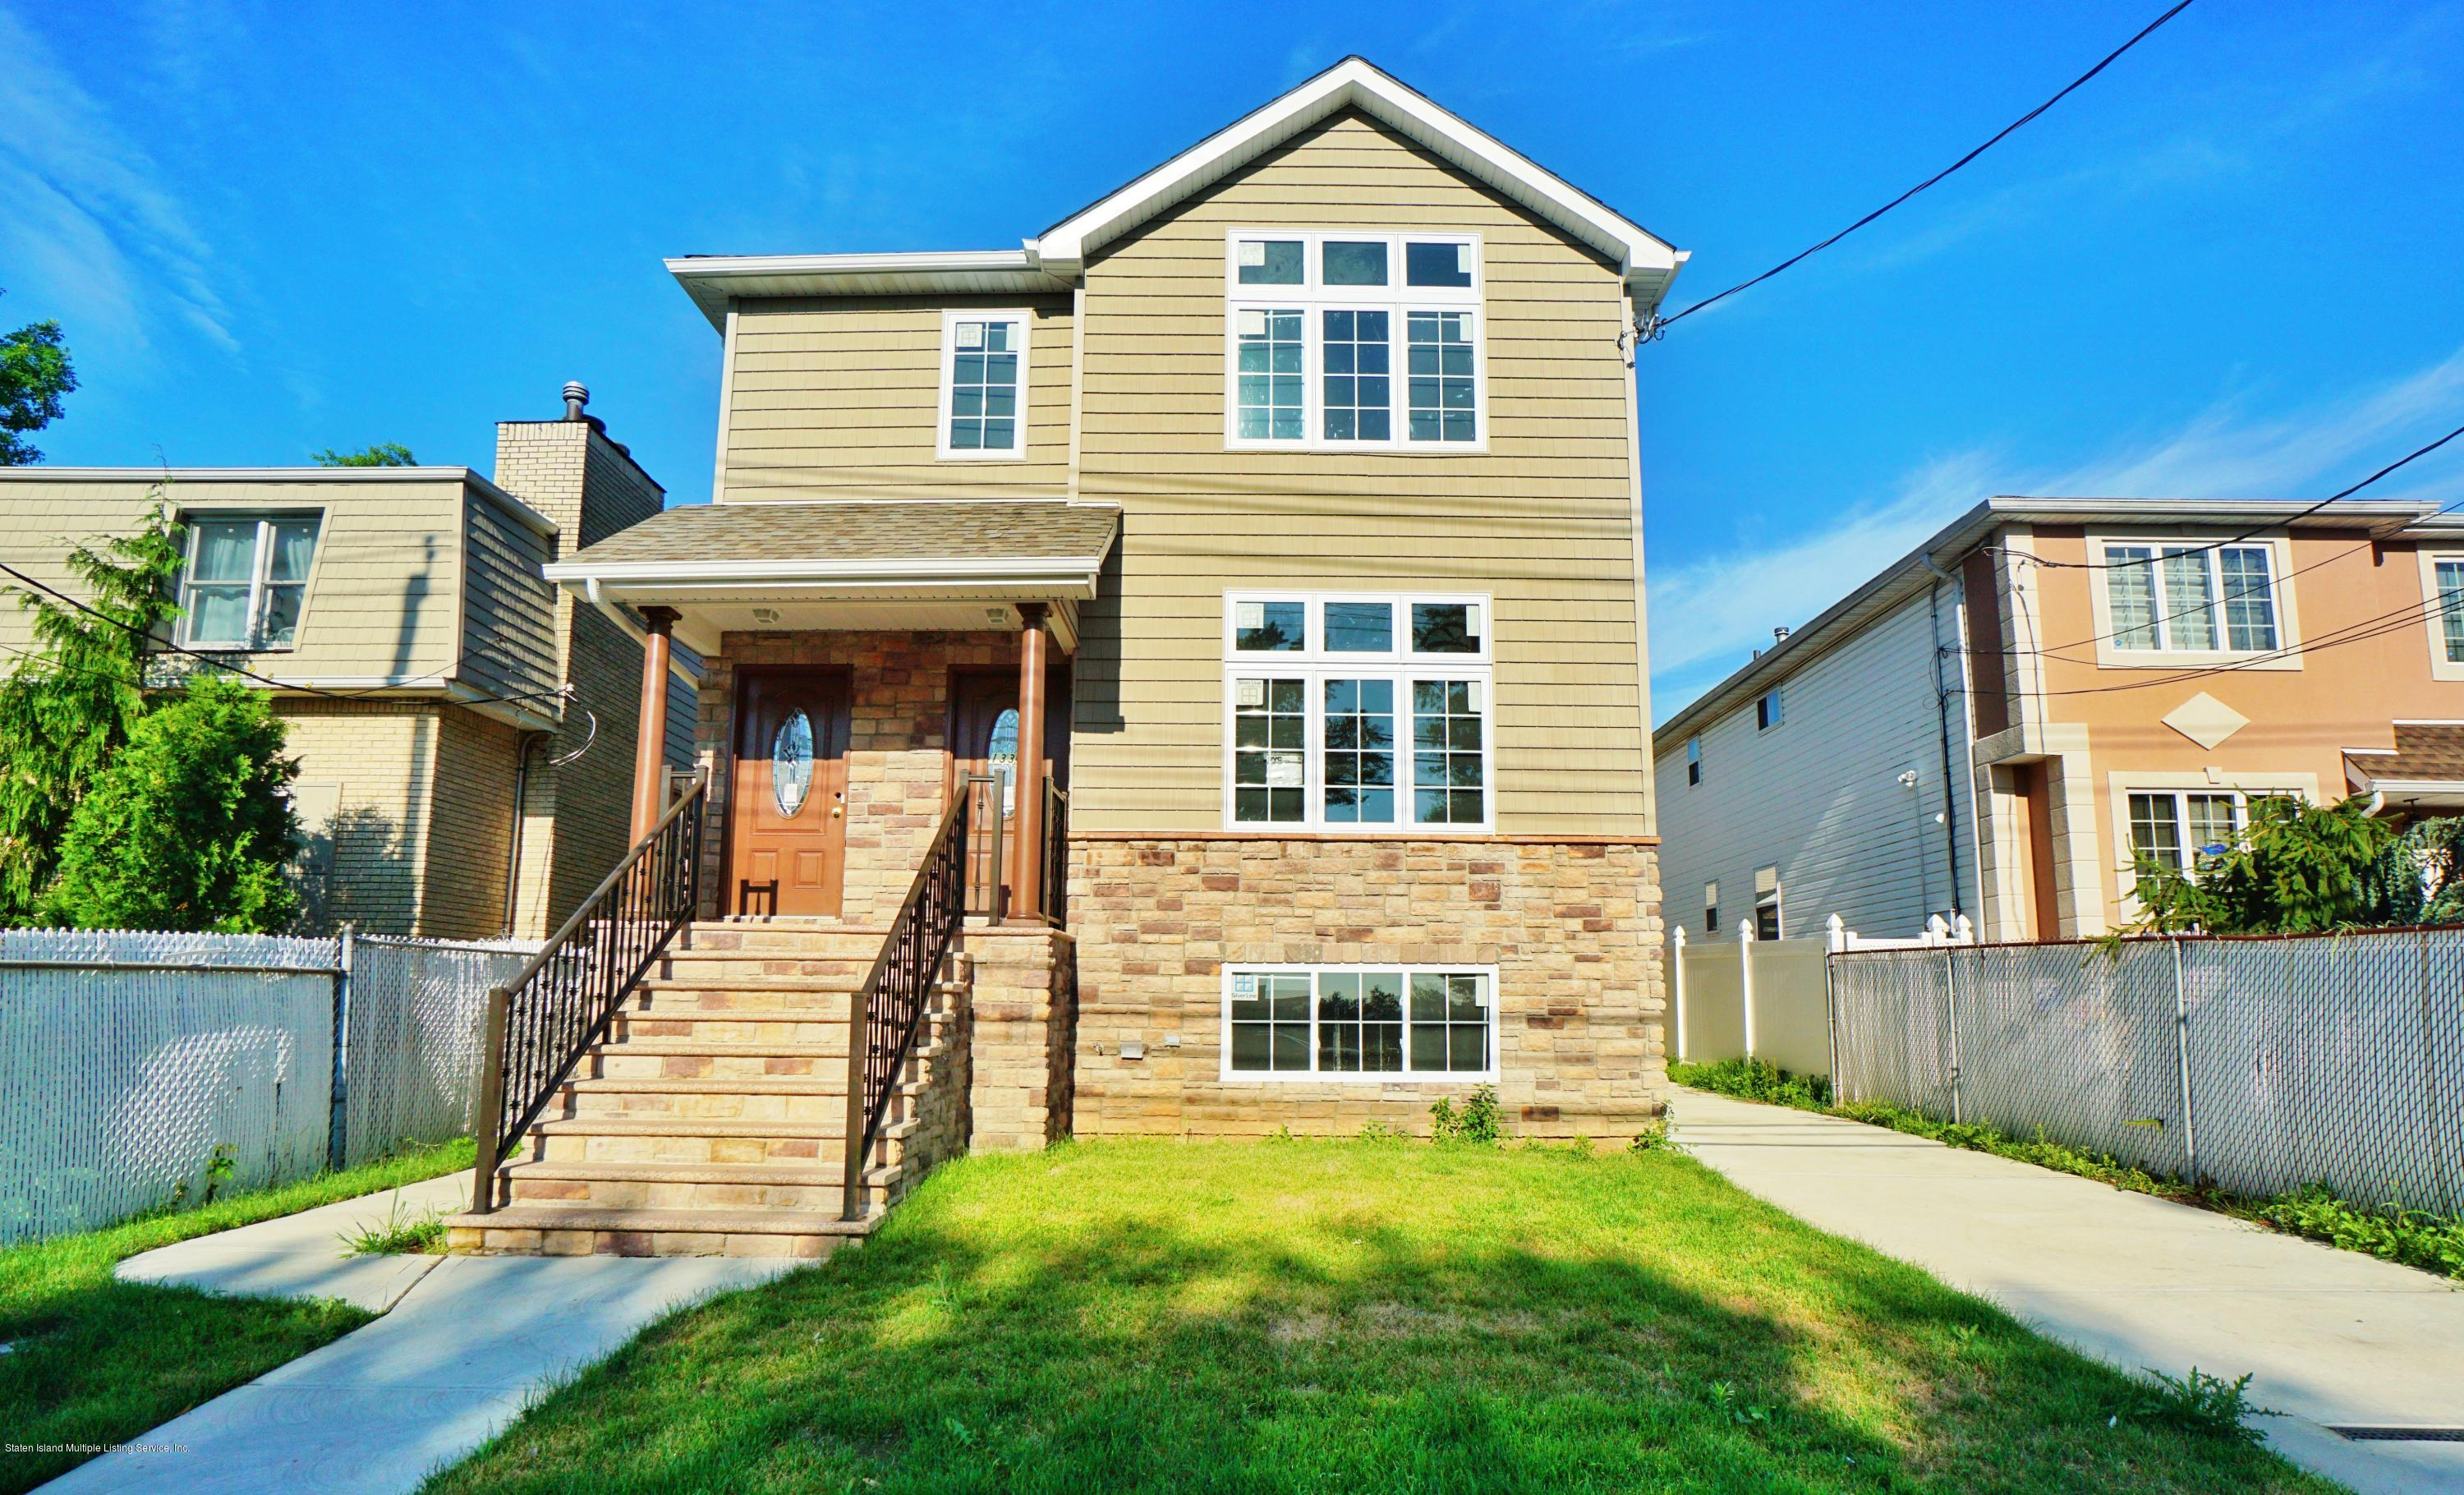 Two Family - Detached 133 Woodrow Road  Staten Island, NY 10312, MLS-1138555-2